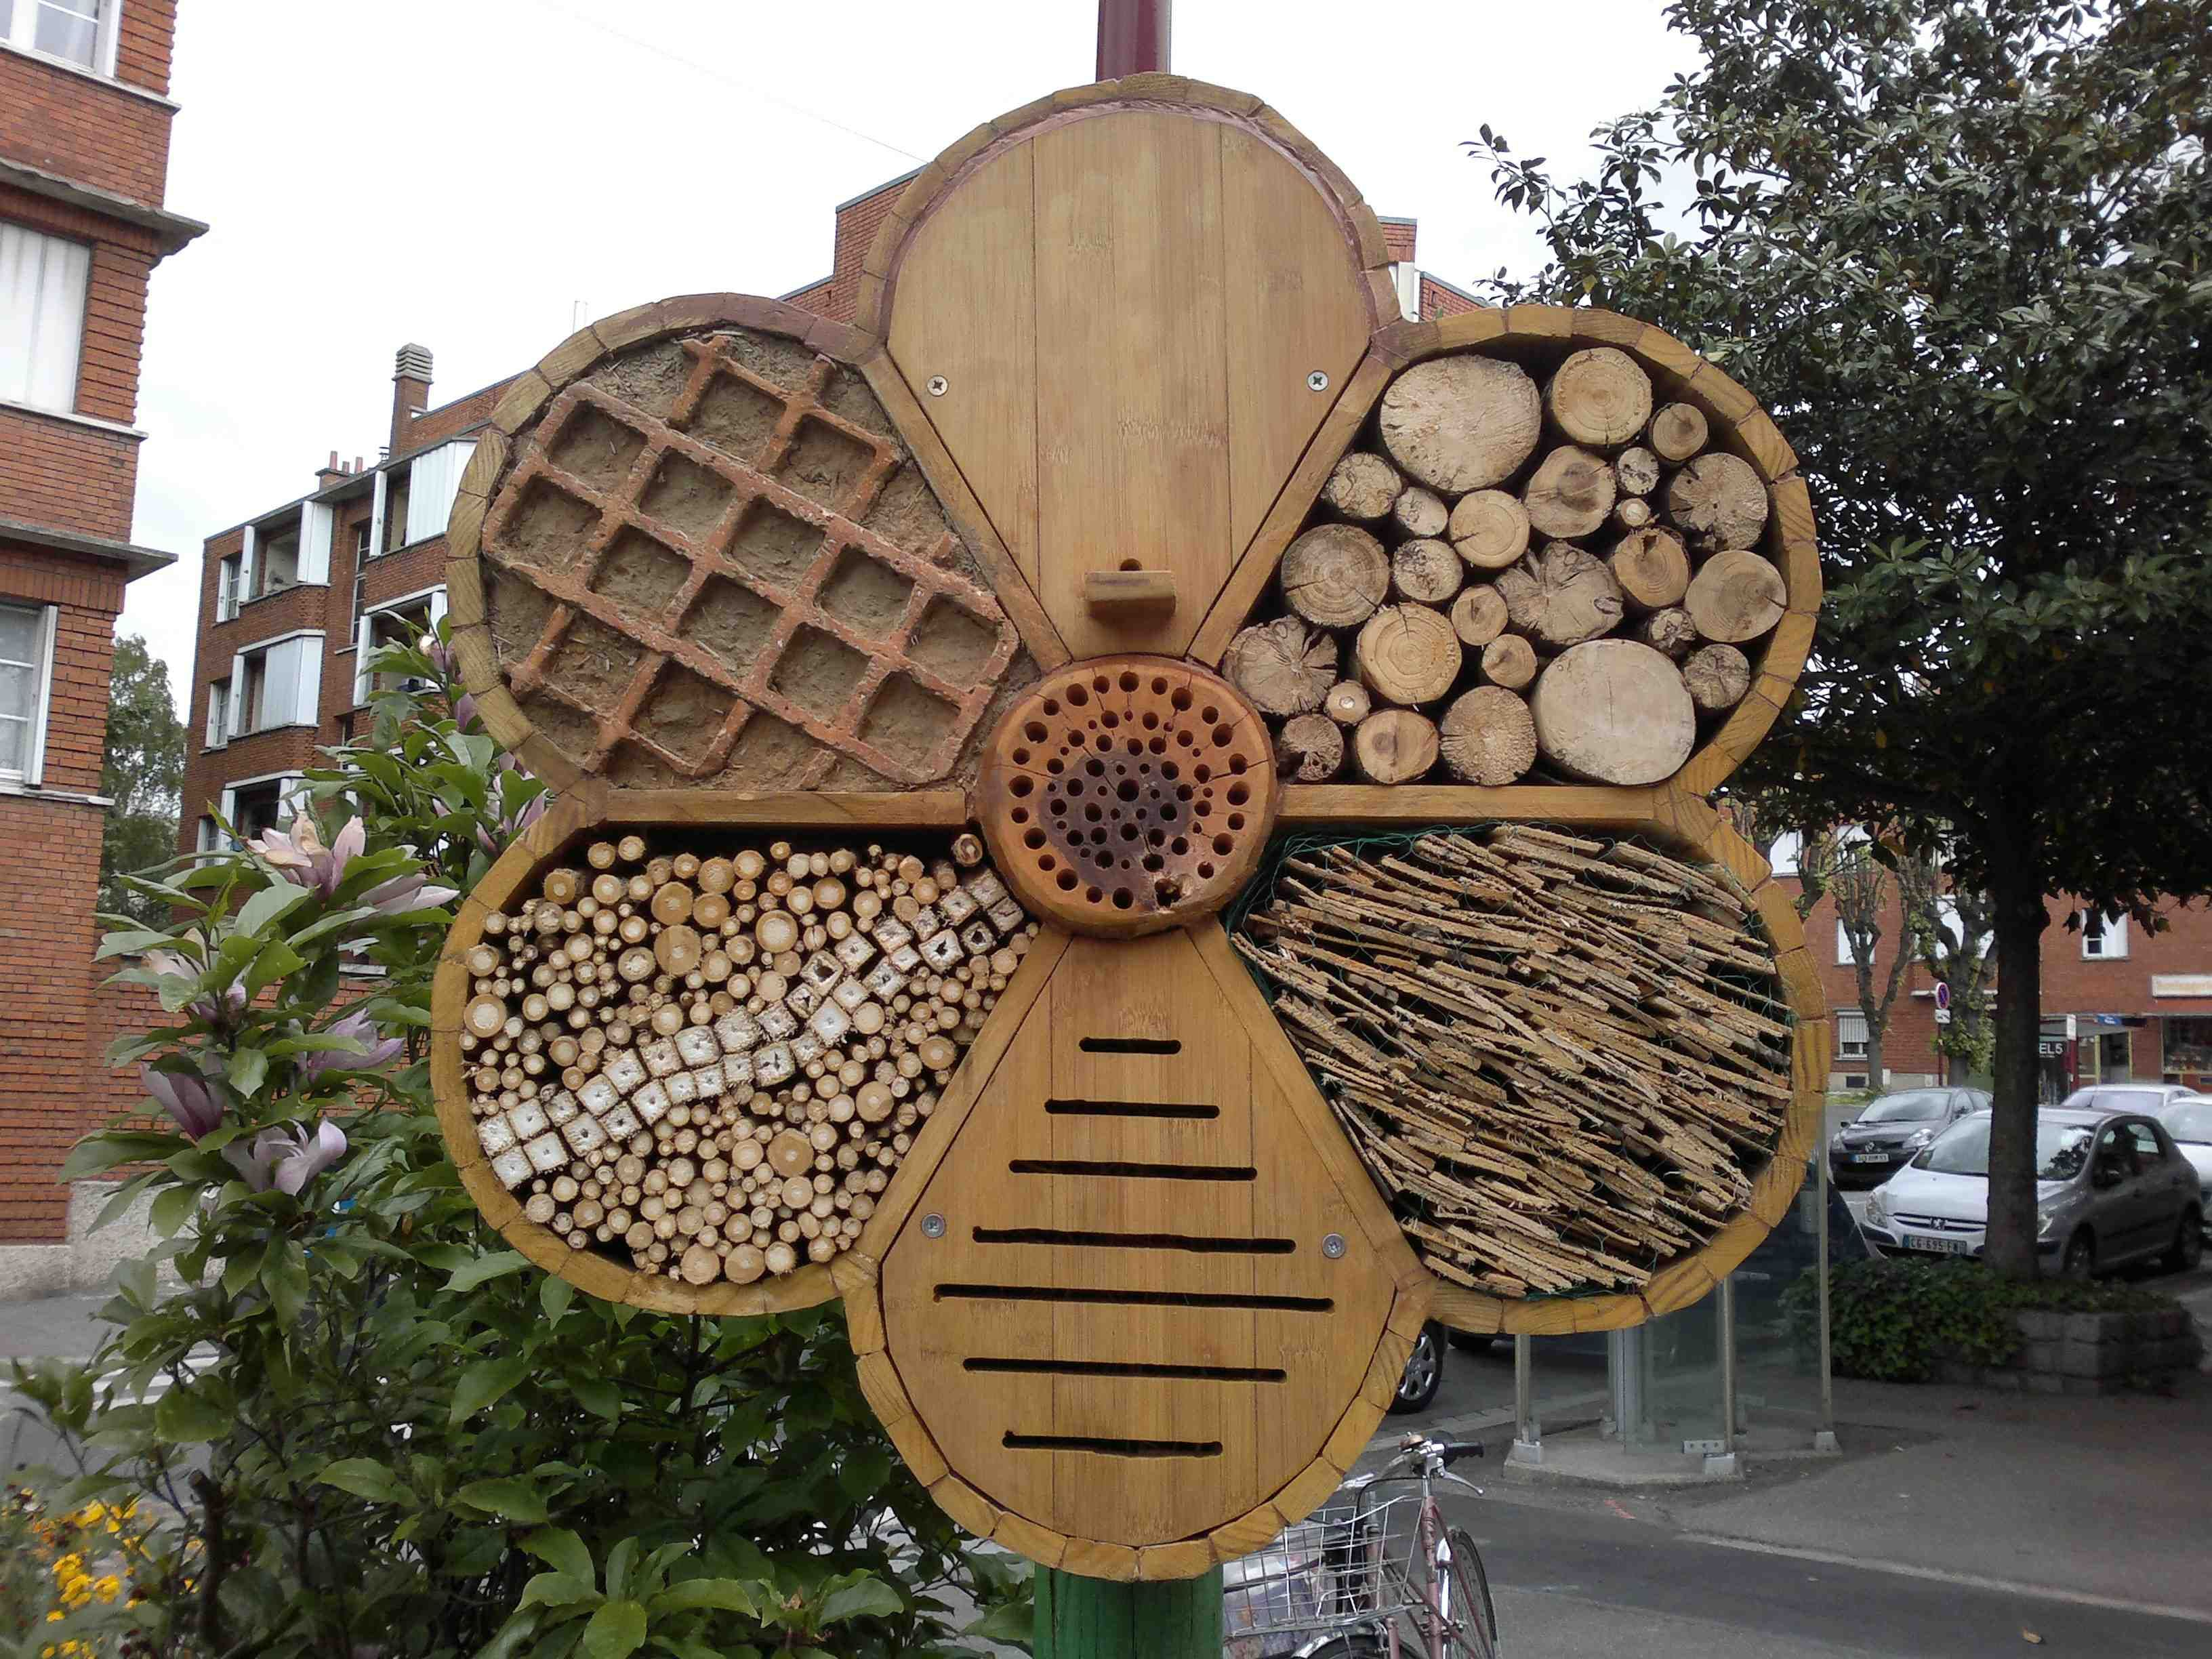 hotel insectes place s verine jardinons ensemble bijenhotels pinterest insect hotel. Black Bedroom Furniture Sets. Home Design Ideas